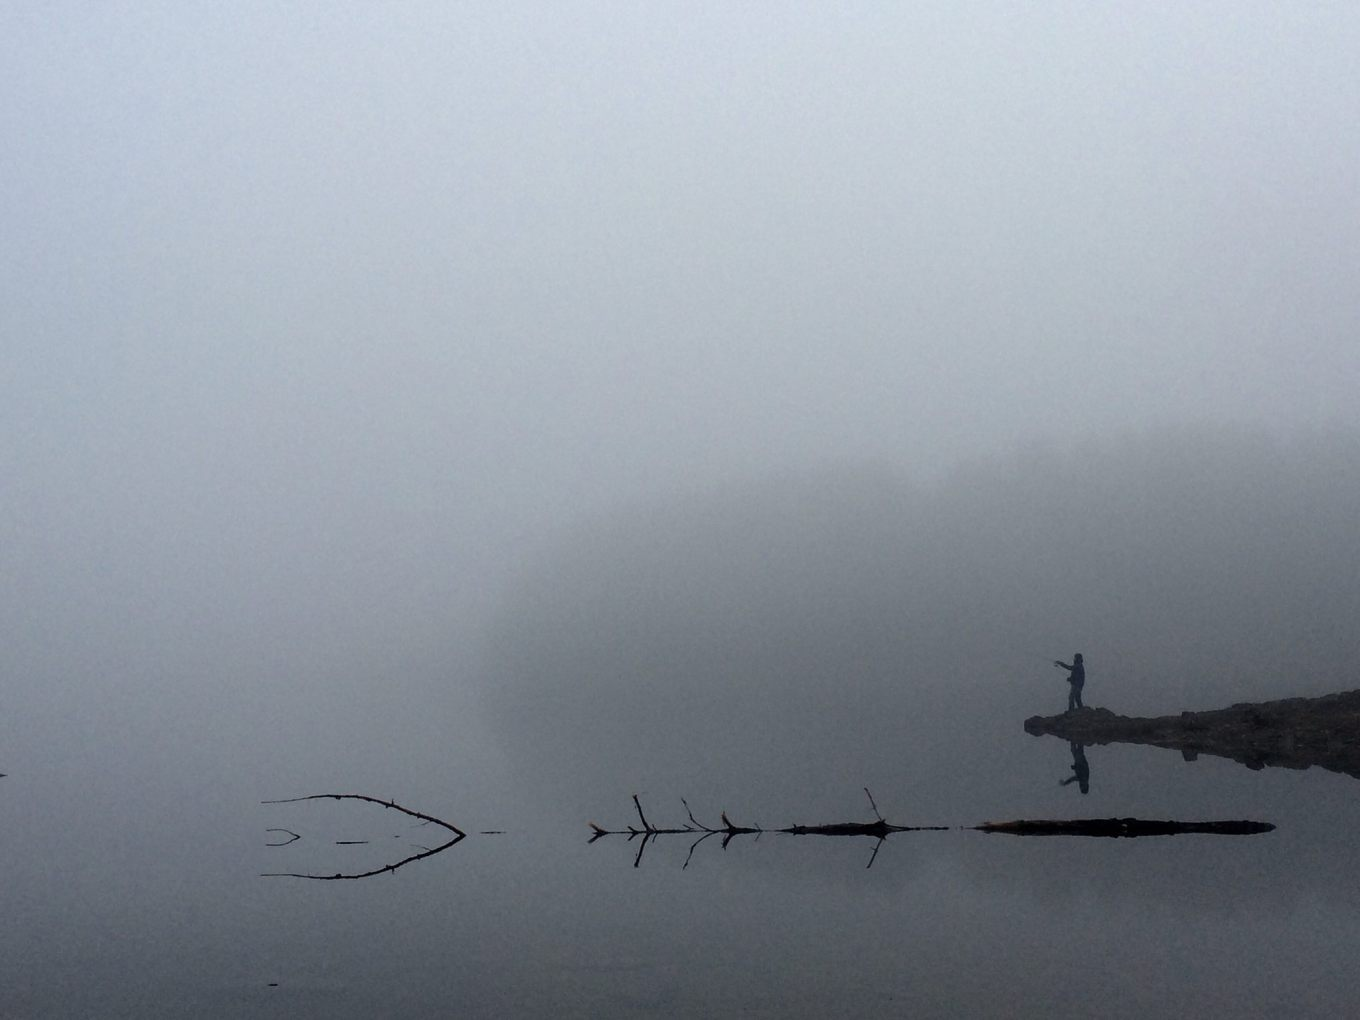 Reservoir fishing in the fog, Burlington MA. Photo credit: Robert Fahey